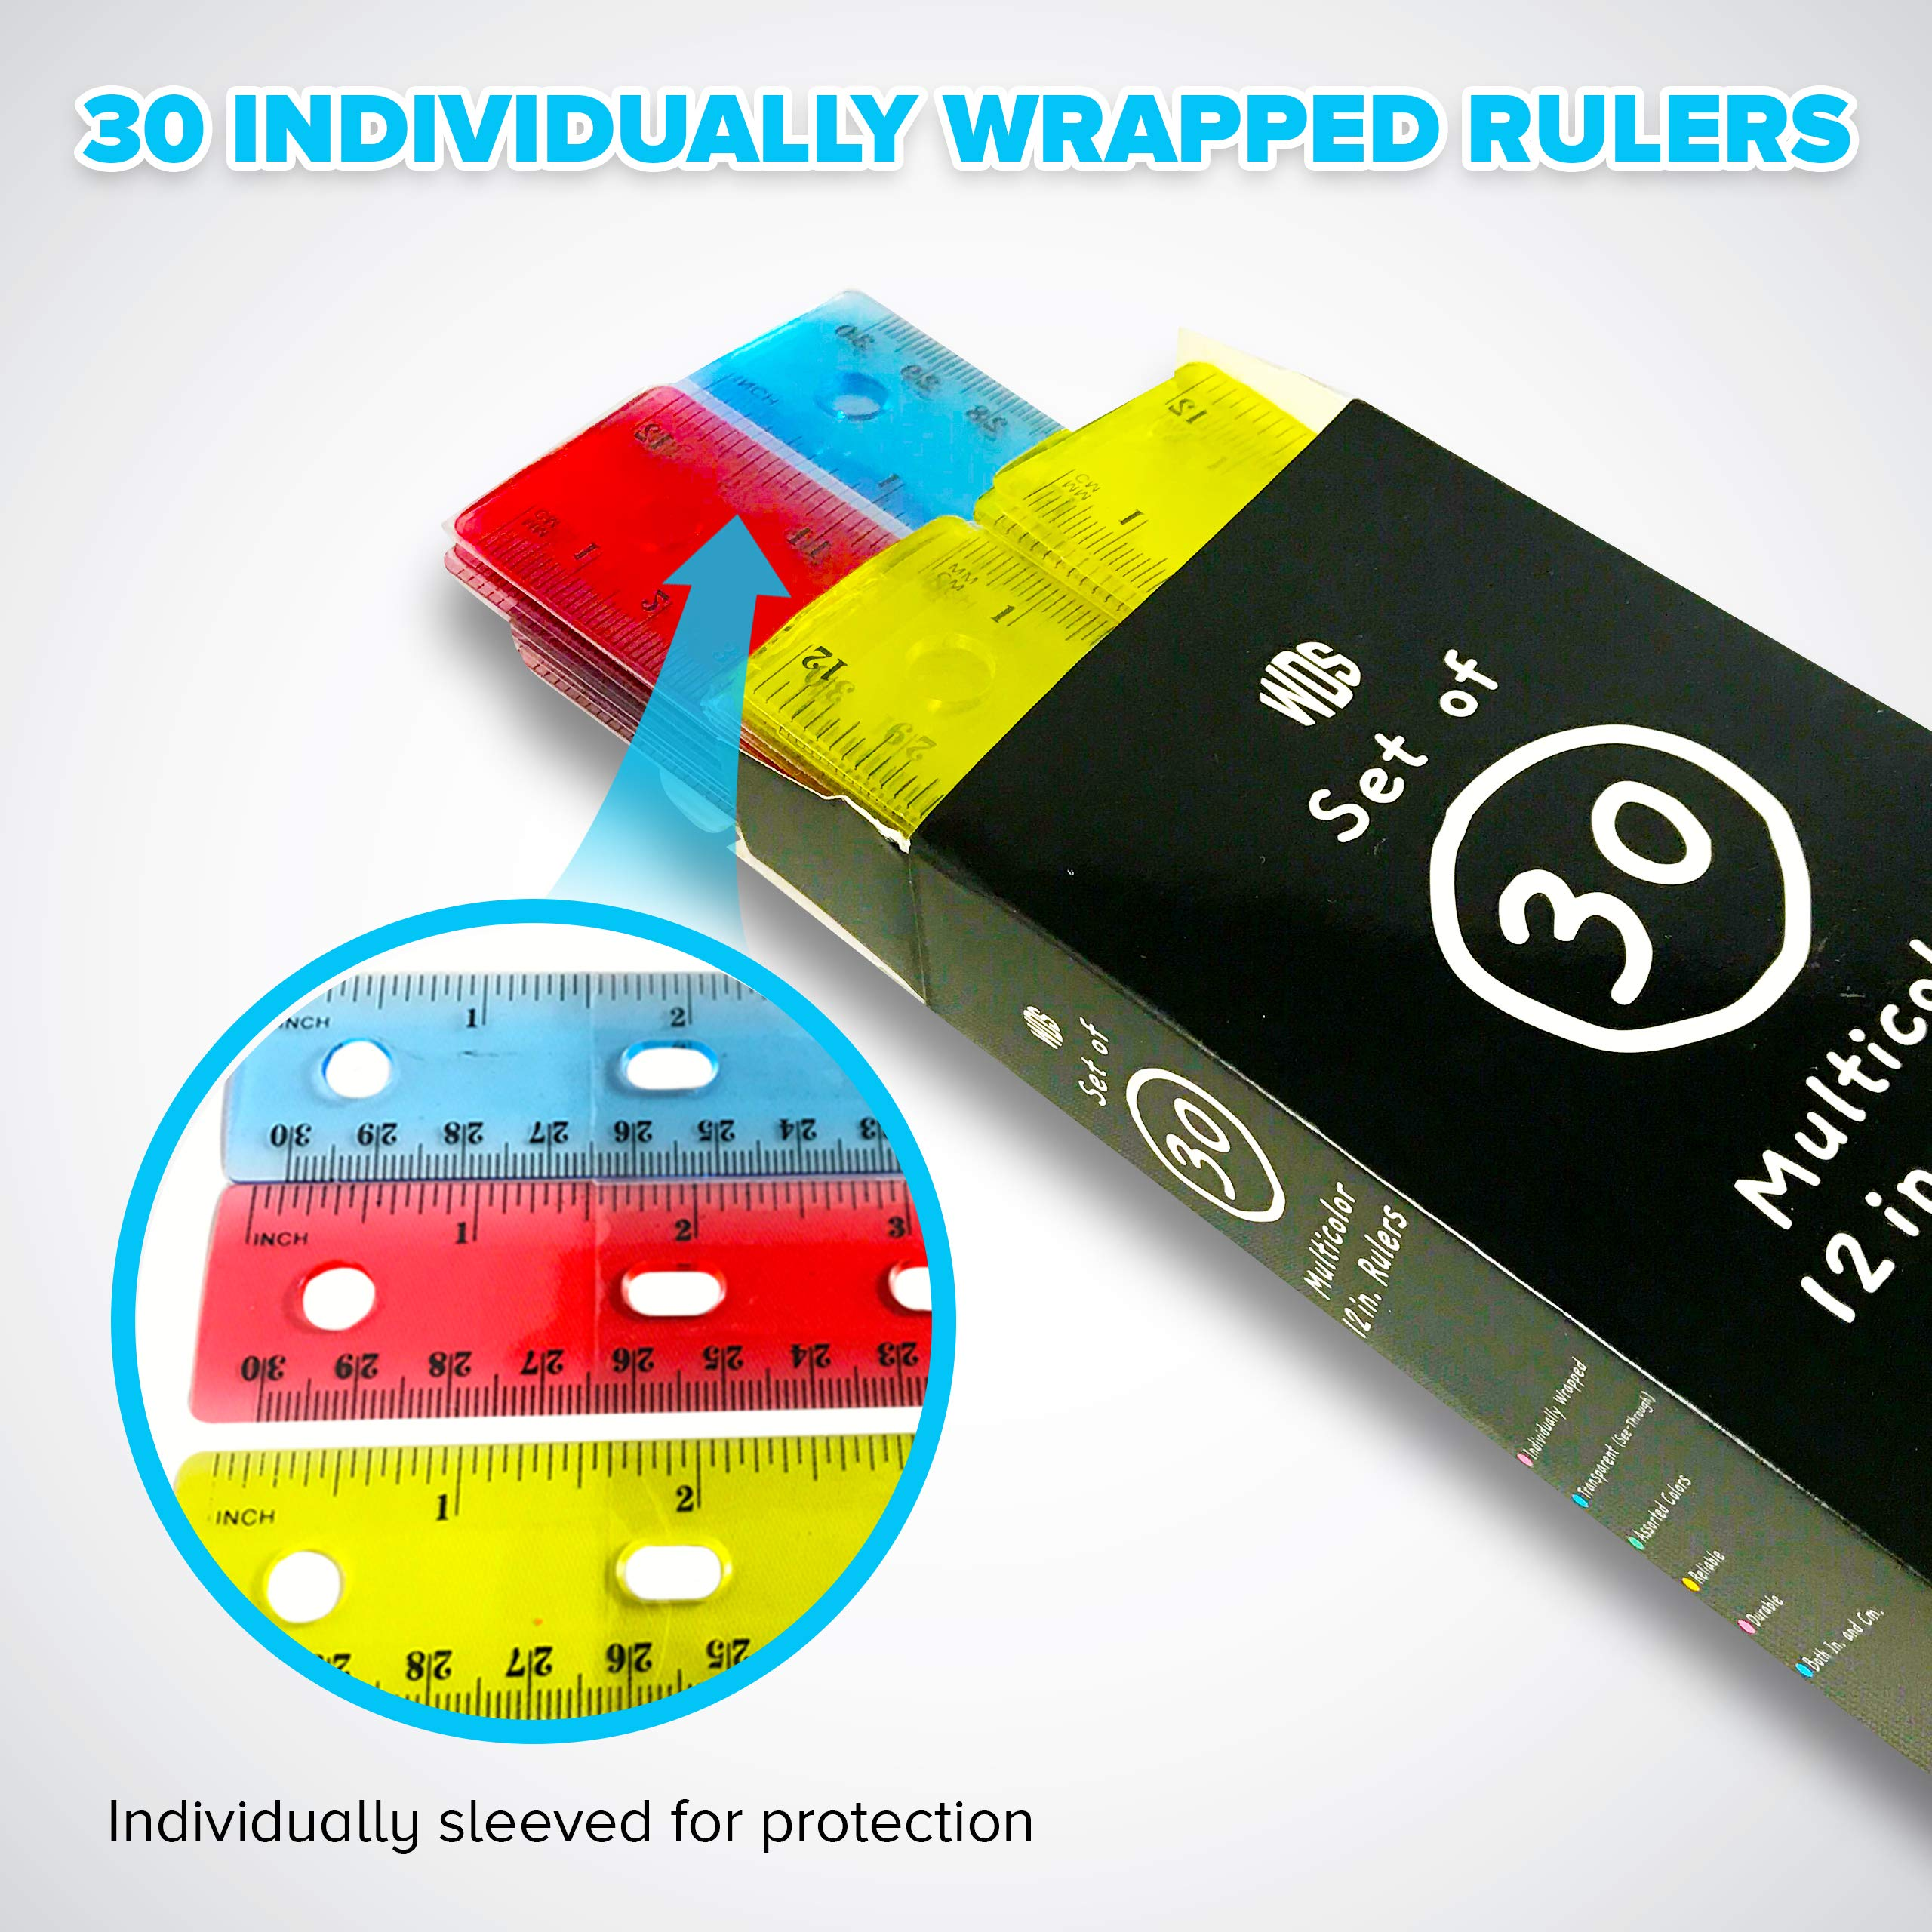 Rulers 12 Inch Bulk (30-Pack) - Plastic Ruler for Kids in Colorful Box - Individually Wrapped - Translucent Flexible - For School Teachers Students Class - Keep in 3 Ring Binder - Inches/Centimeters